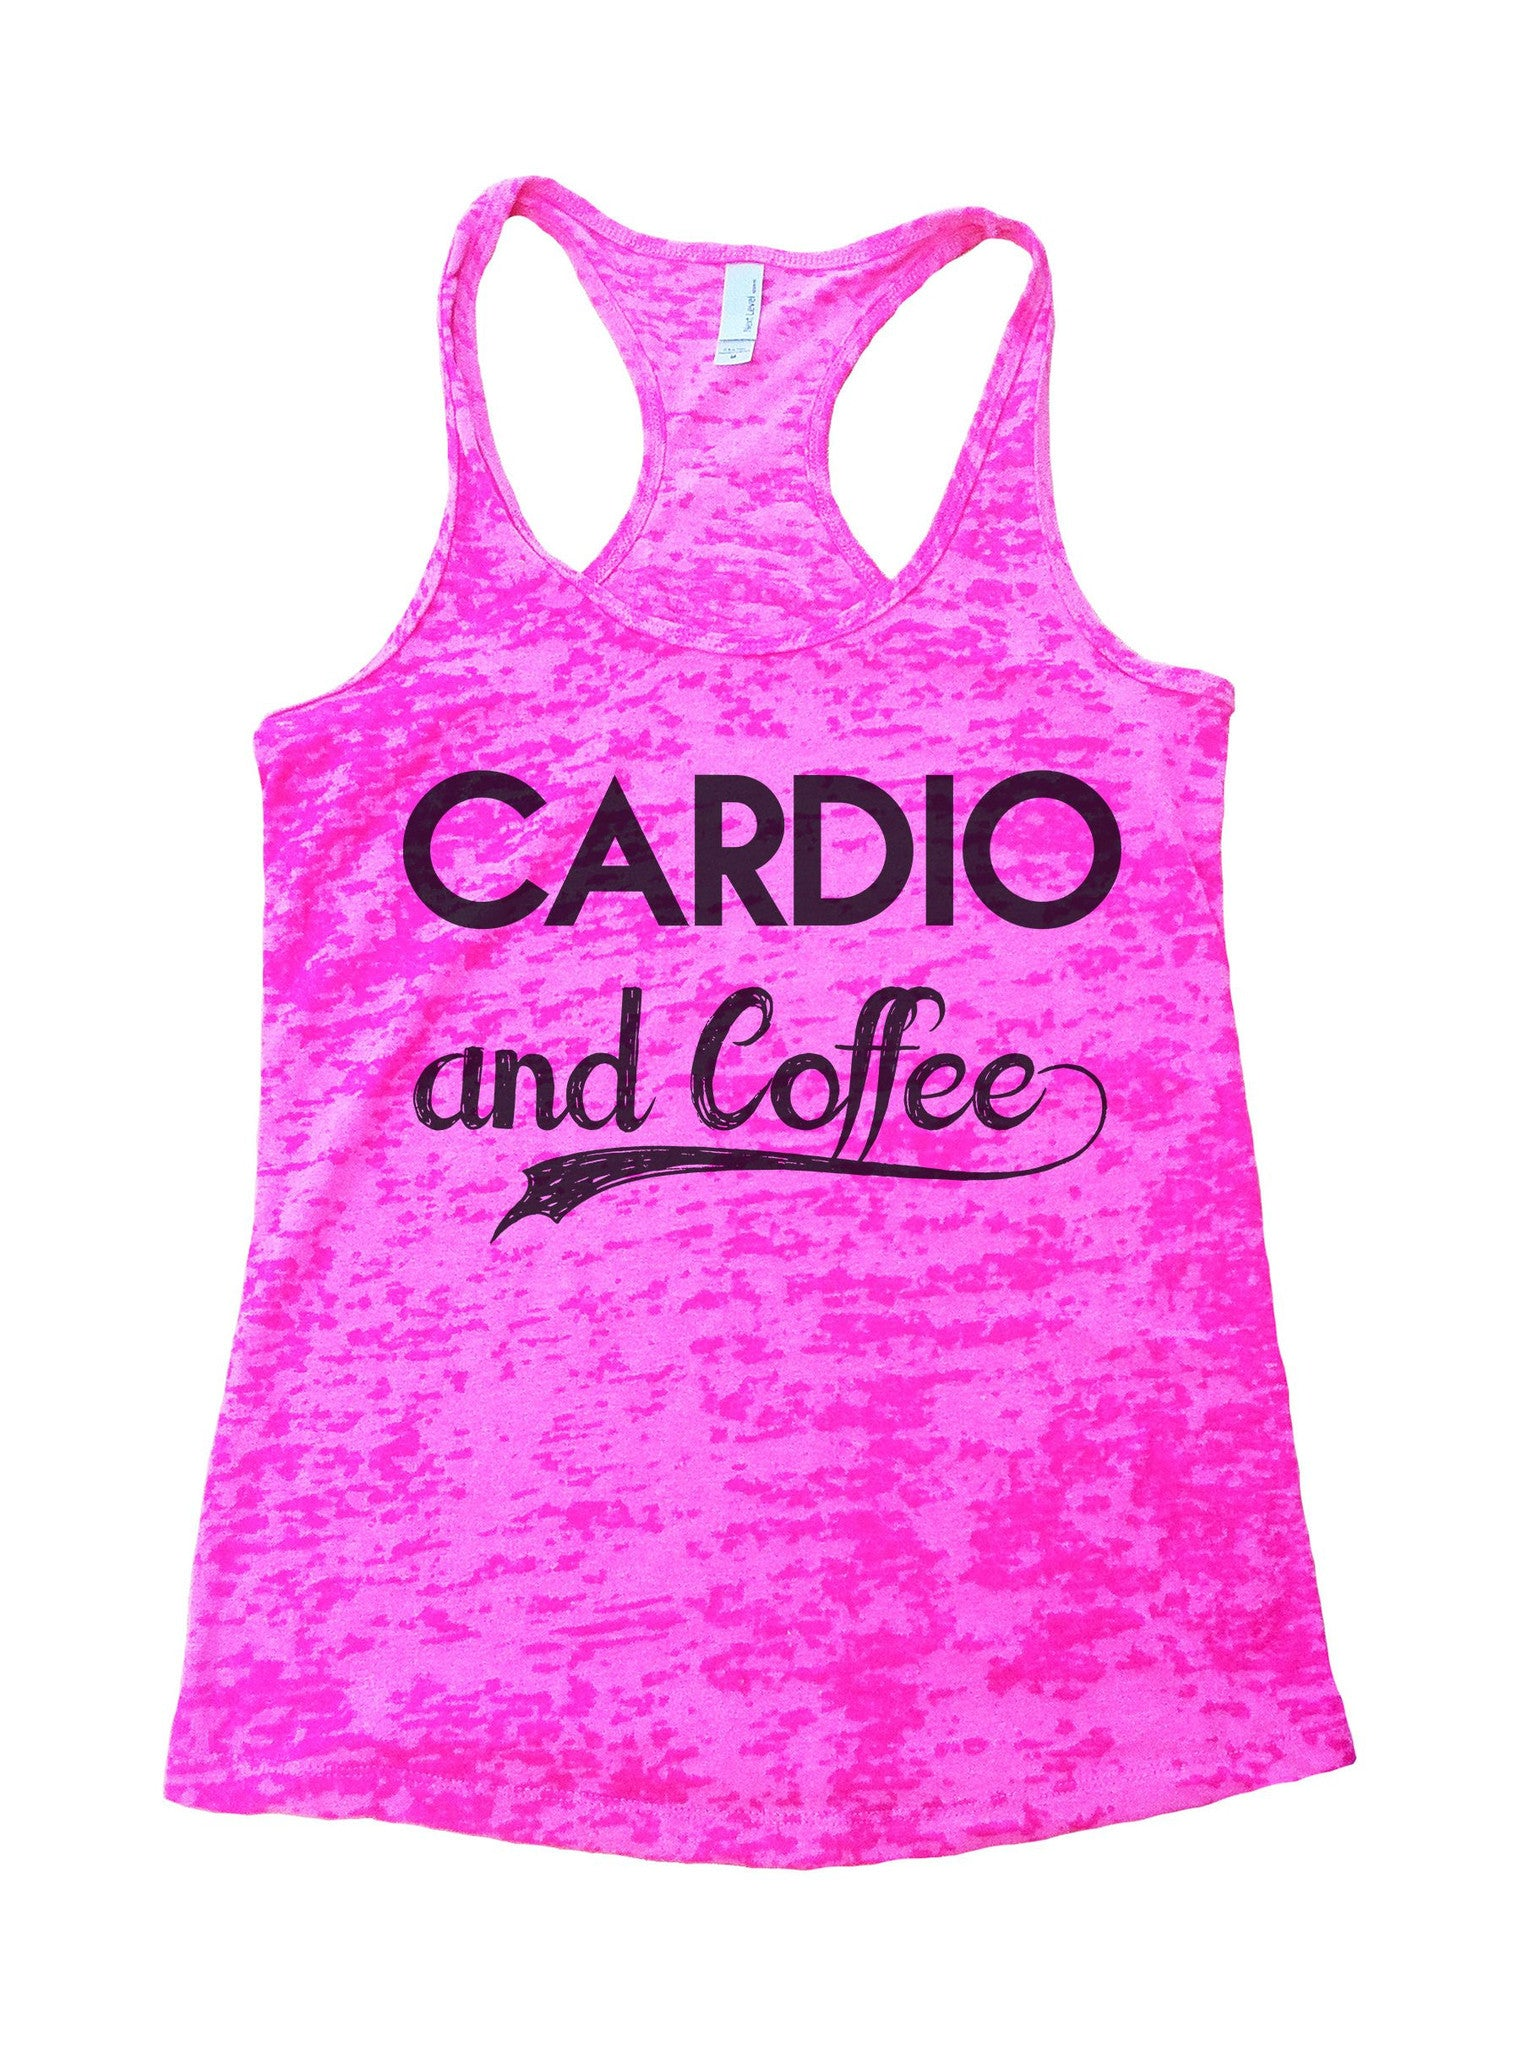 Cardio And Coffee Burnout Tank Top By BurnoutTankTops.com - 797 - Funny Shirts Tank Tops Burnouts and Triblends  - 5